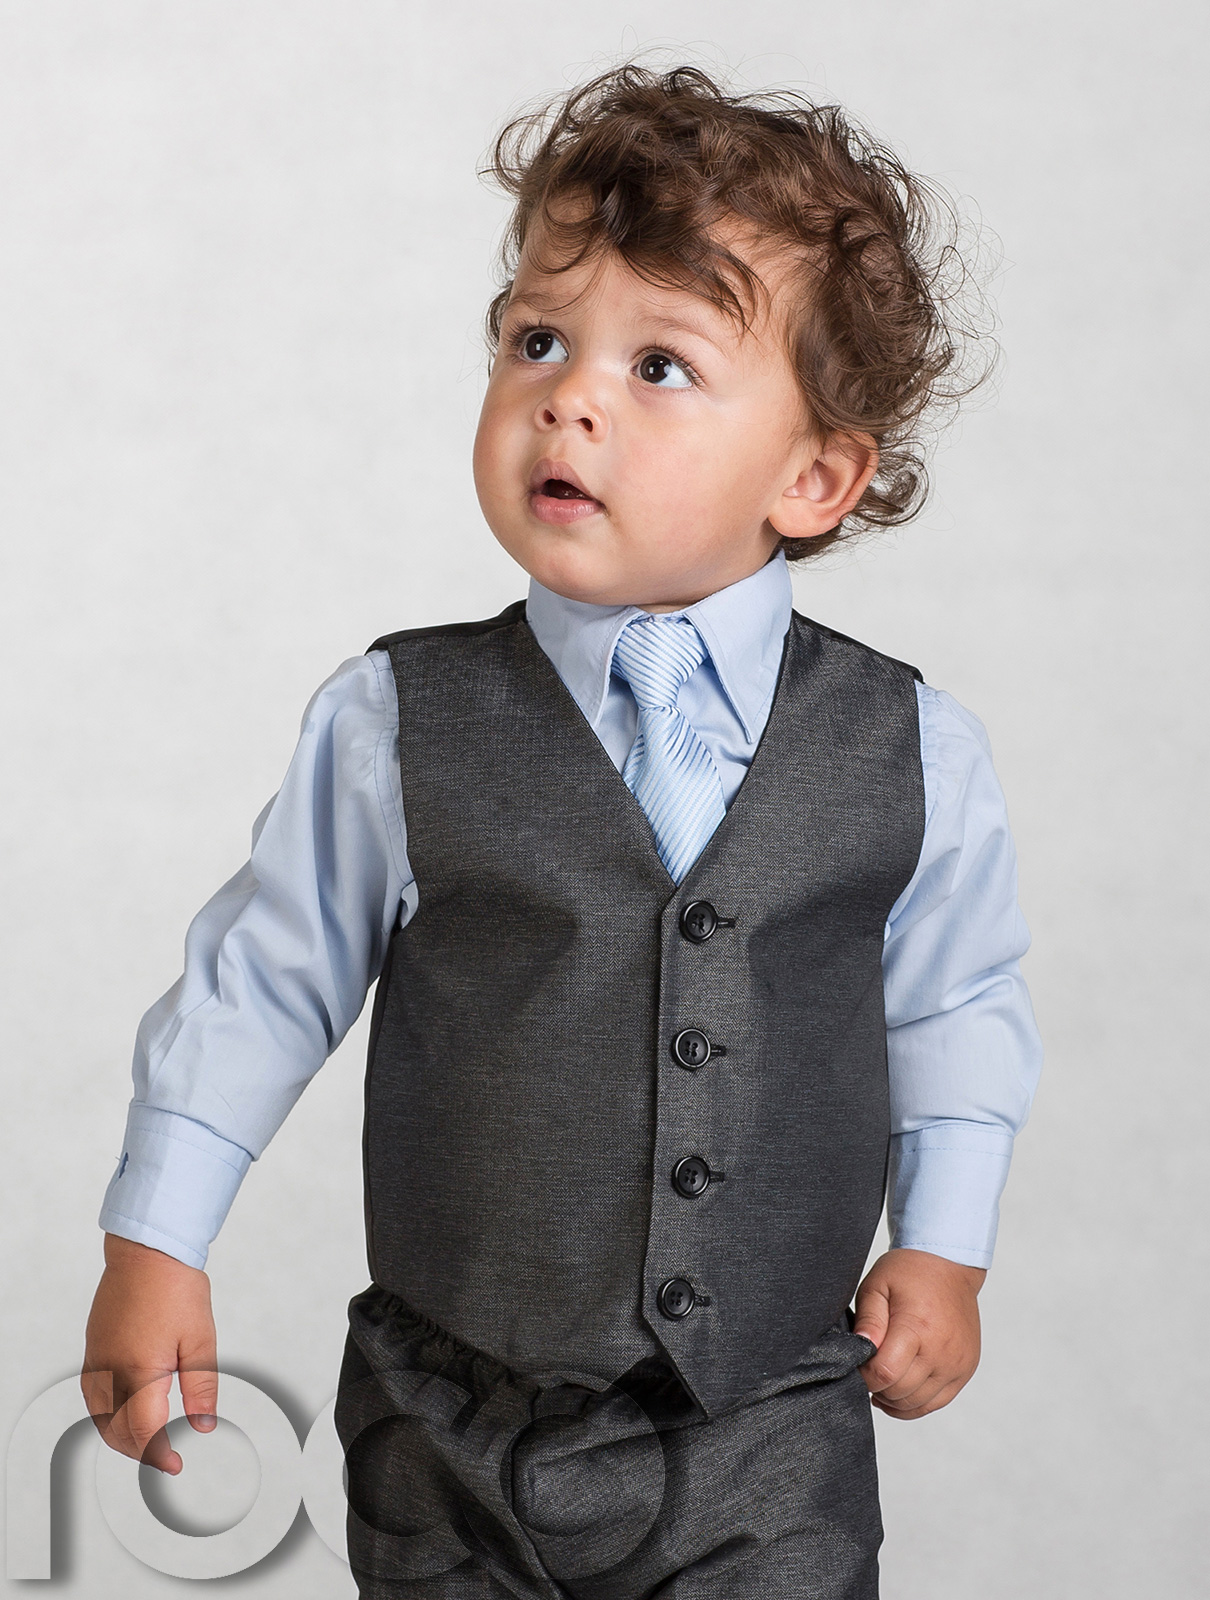 Baby Boy Suits. invalid category id. Baby Boy Suits. Showing 34 of 34 results that match your query. Search Product Result. Product - Always Be Yourself Manatee Black Soft Baby One Piece. Product Image. Price $ Product Title. Always Be Yourself Manatee Black Soft Baby One Piece. Product - Hatley Baby Boys' Graphic Romper. Product Image.